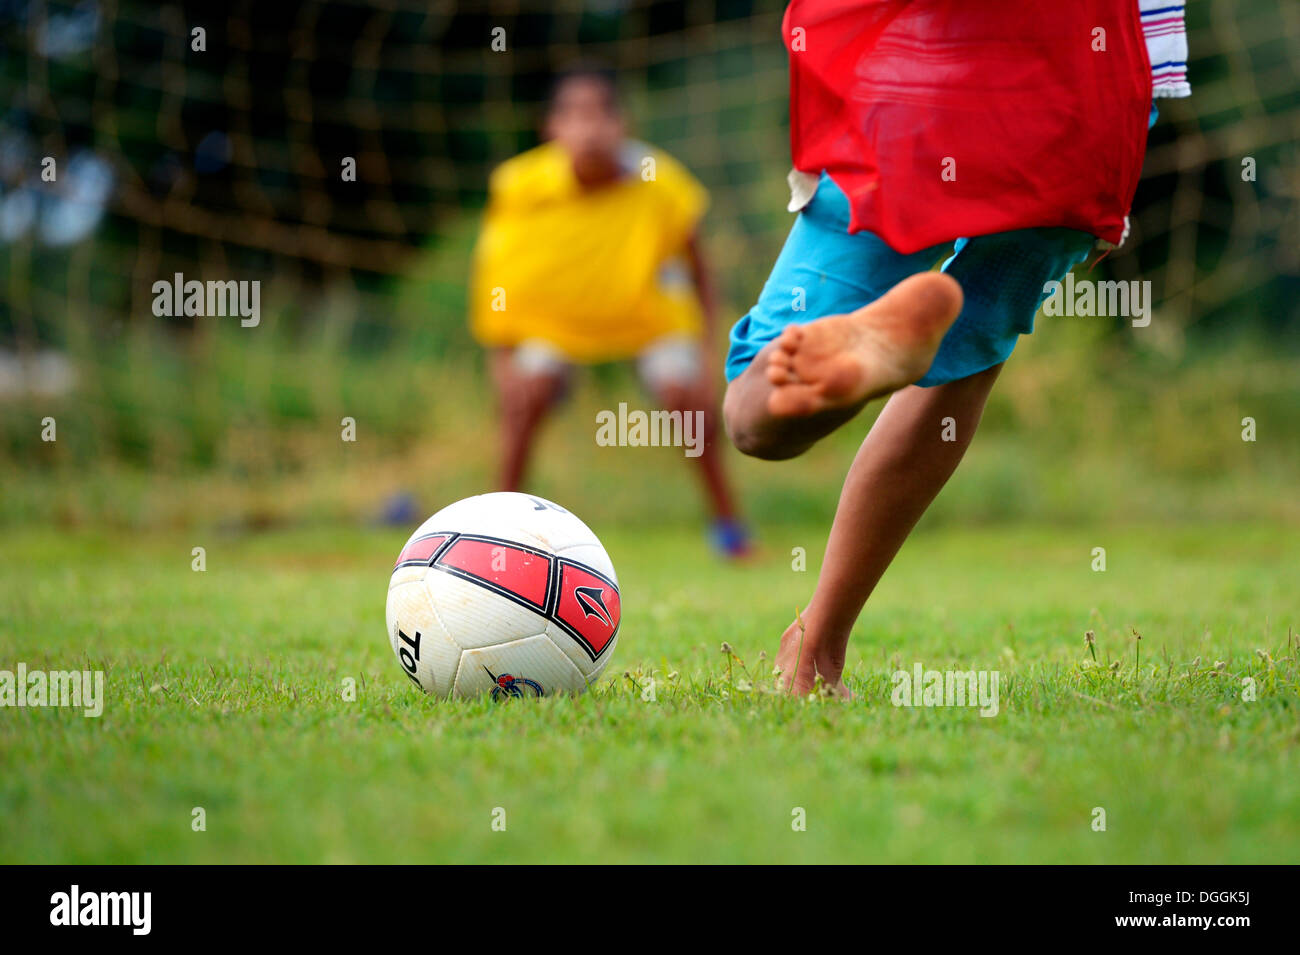 Barefoot boy taking a penalty kick, social project in a favela, Poxoréo, Mato Grosso, Brazil - Stock Image